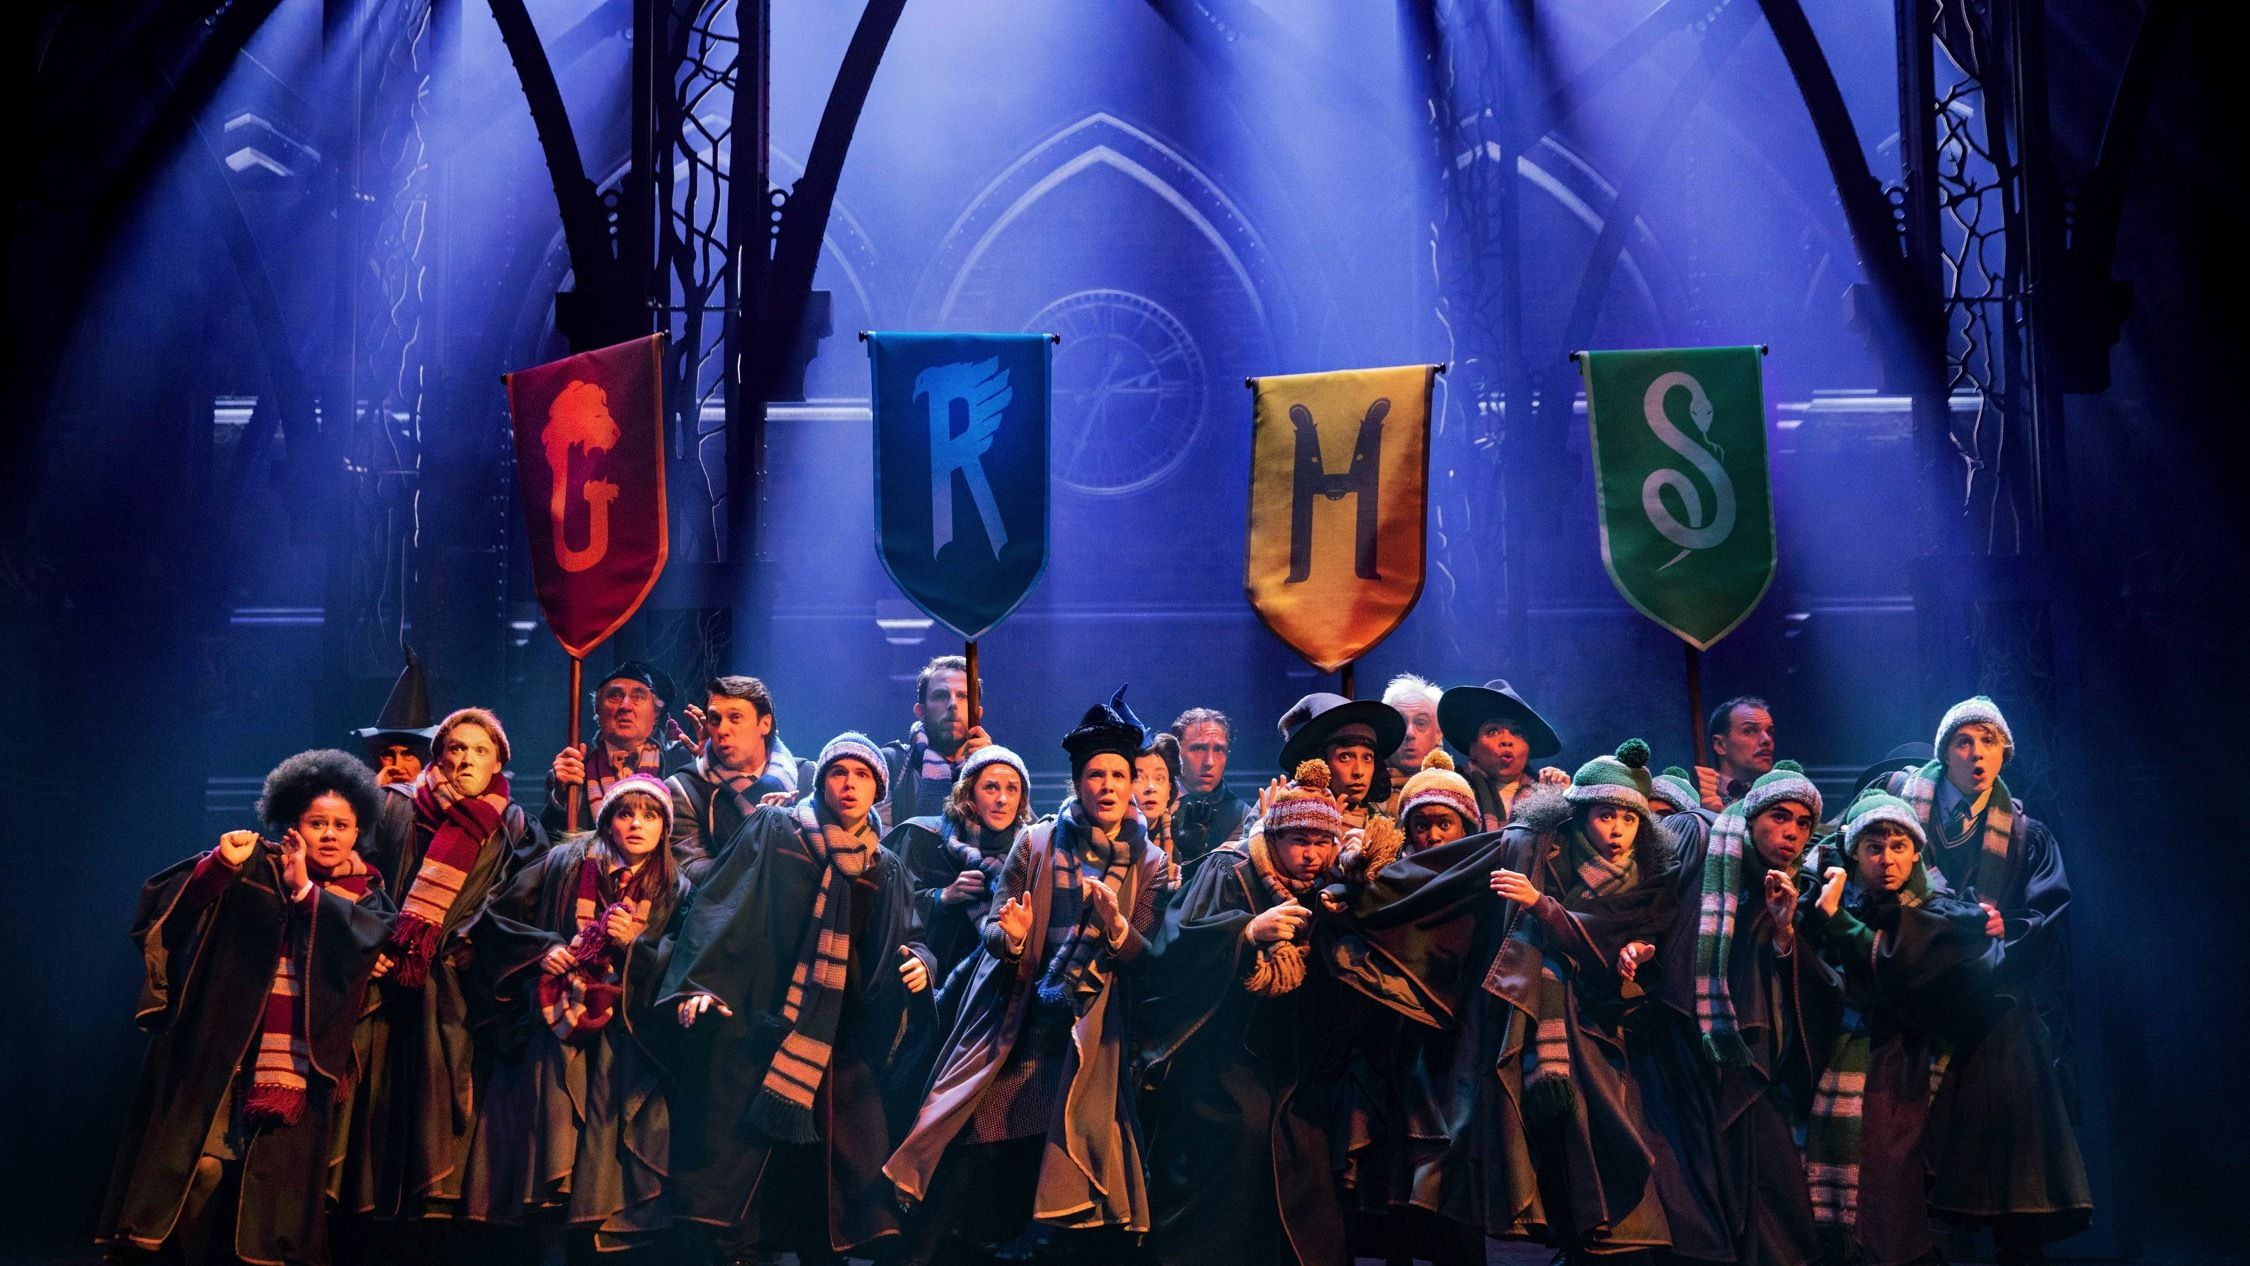 Harry Potter And The Cursed Child Tickets Melbourne Harry Potter Cursed Child Cursed Child Harry Potter Curses